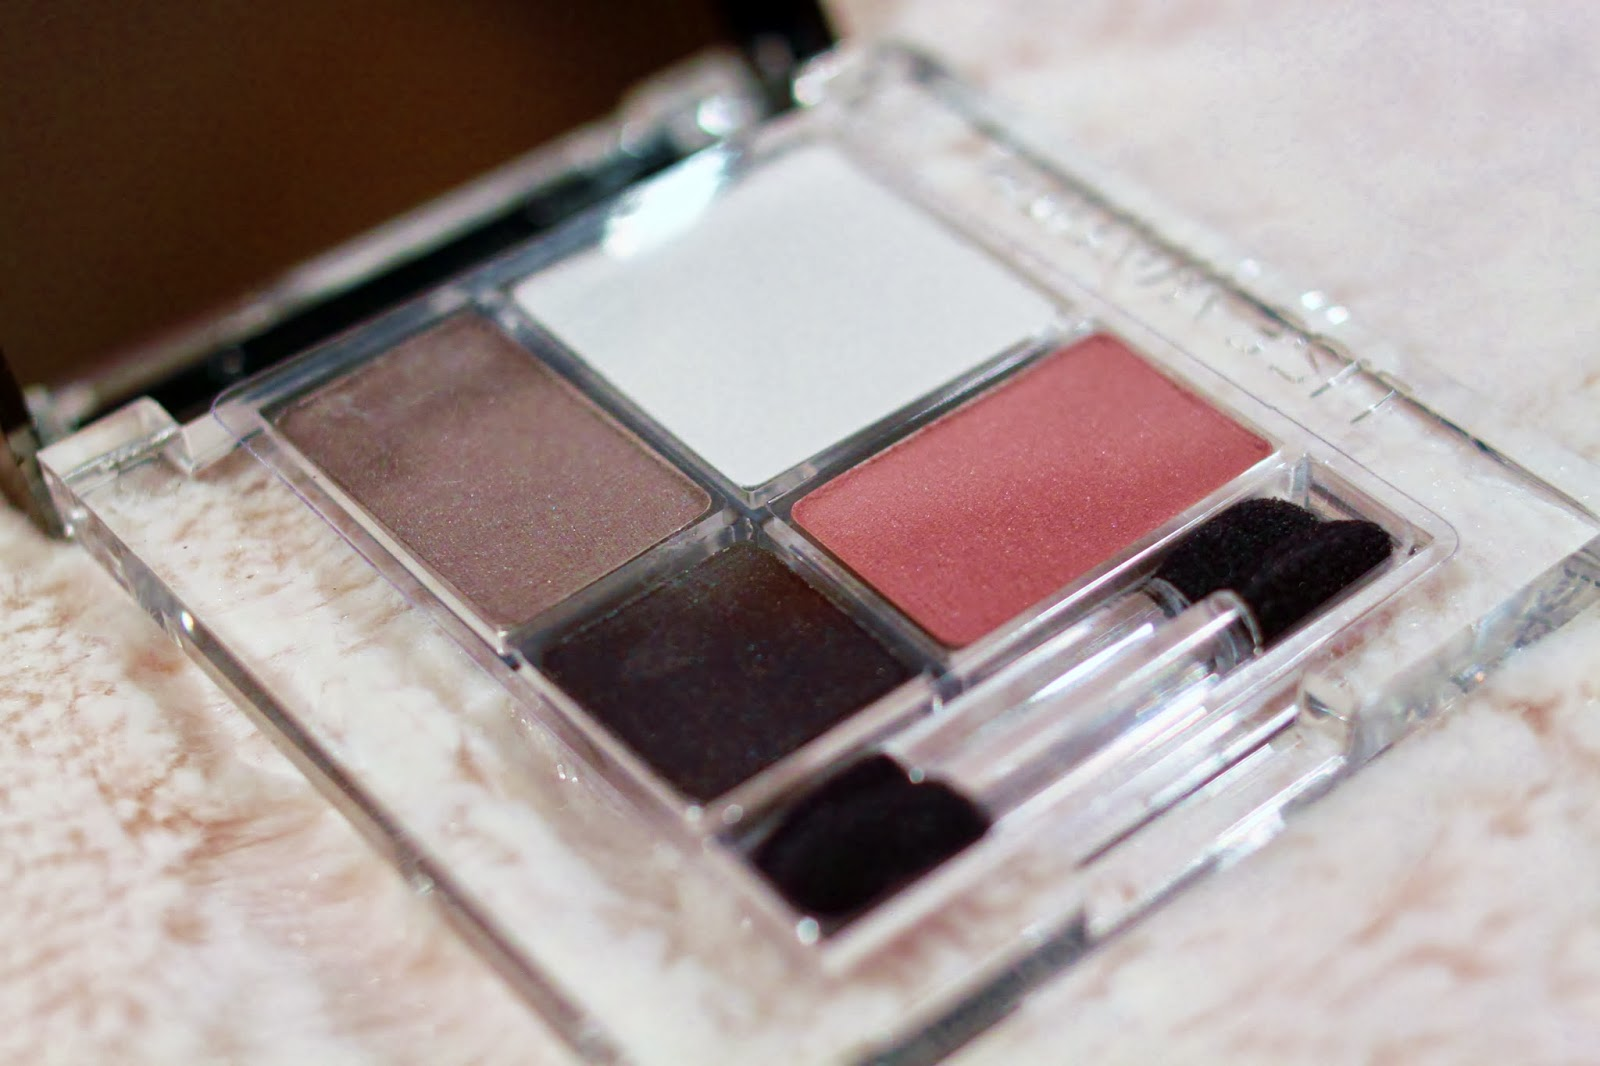 Lise Watier Spring 2014 Quad Les Mats eye-shadow palette. Photo: Just J